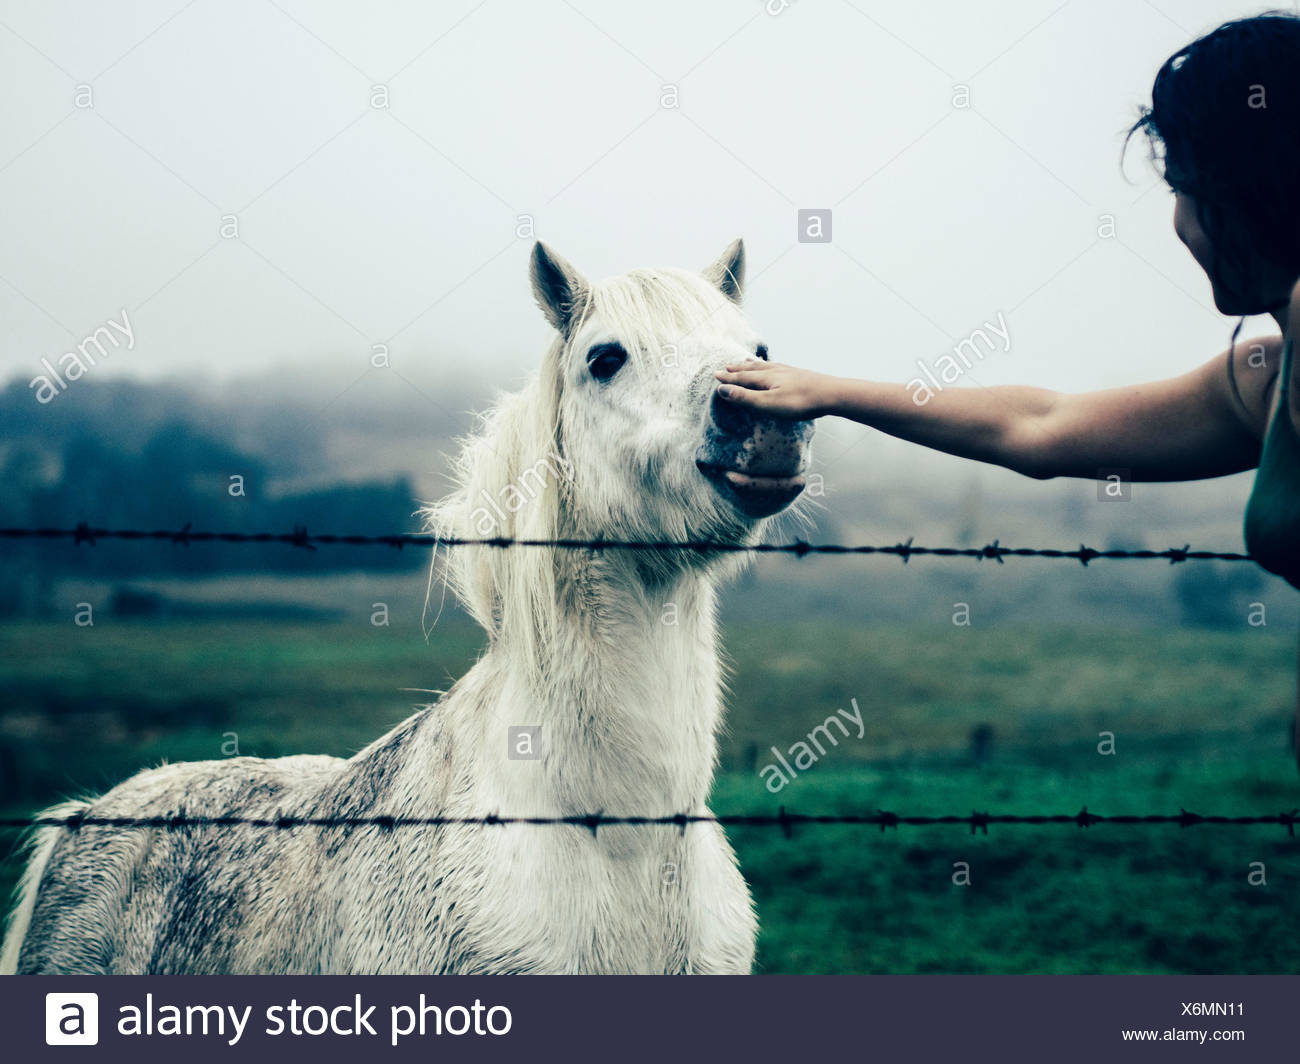 Cropped Hand Touching White Horse In Ranch Against Sky - Stock Image